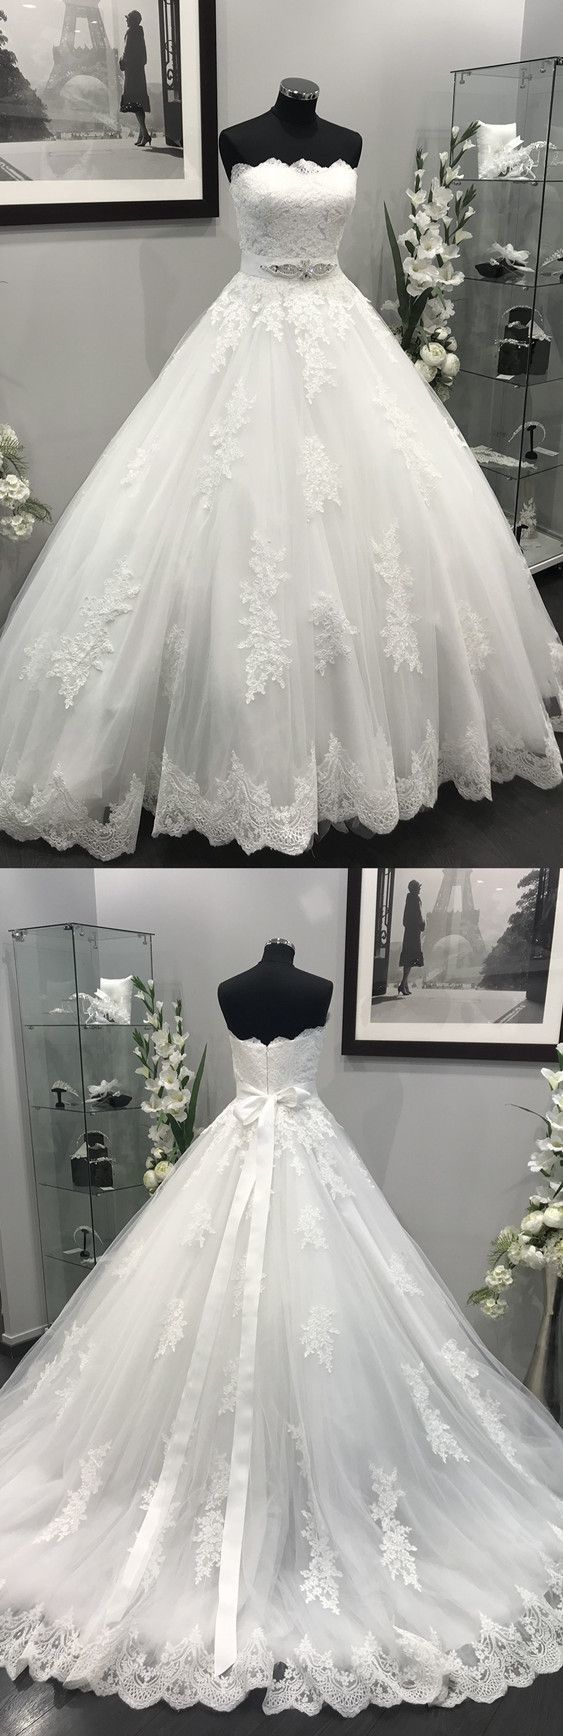 Lace Appliques Crystal Beaded Sashes Tulle Wedding Dresses Ball Gowns, Pricess